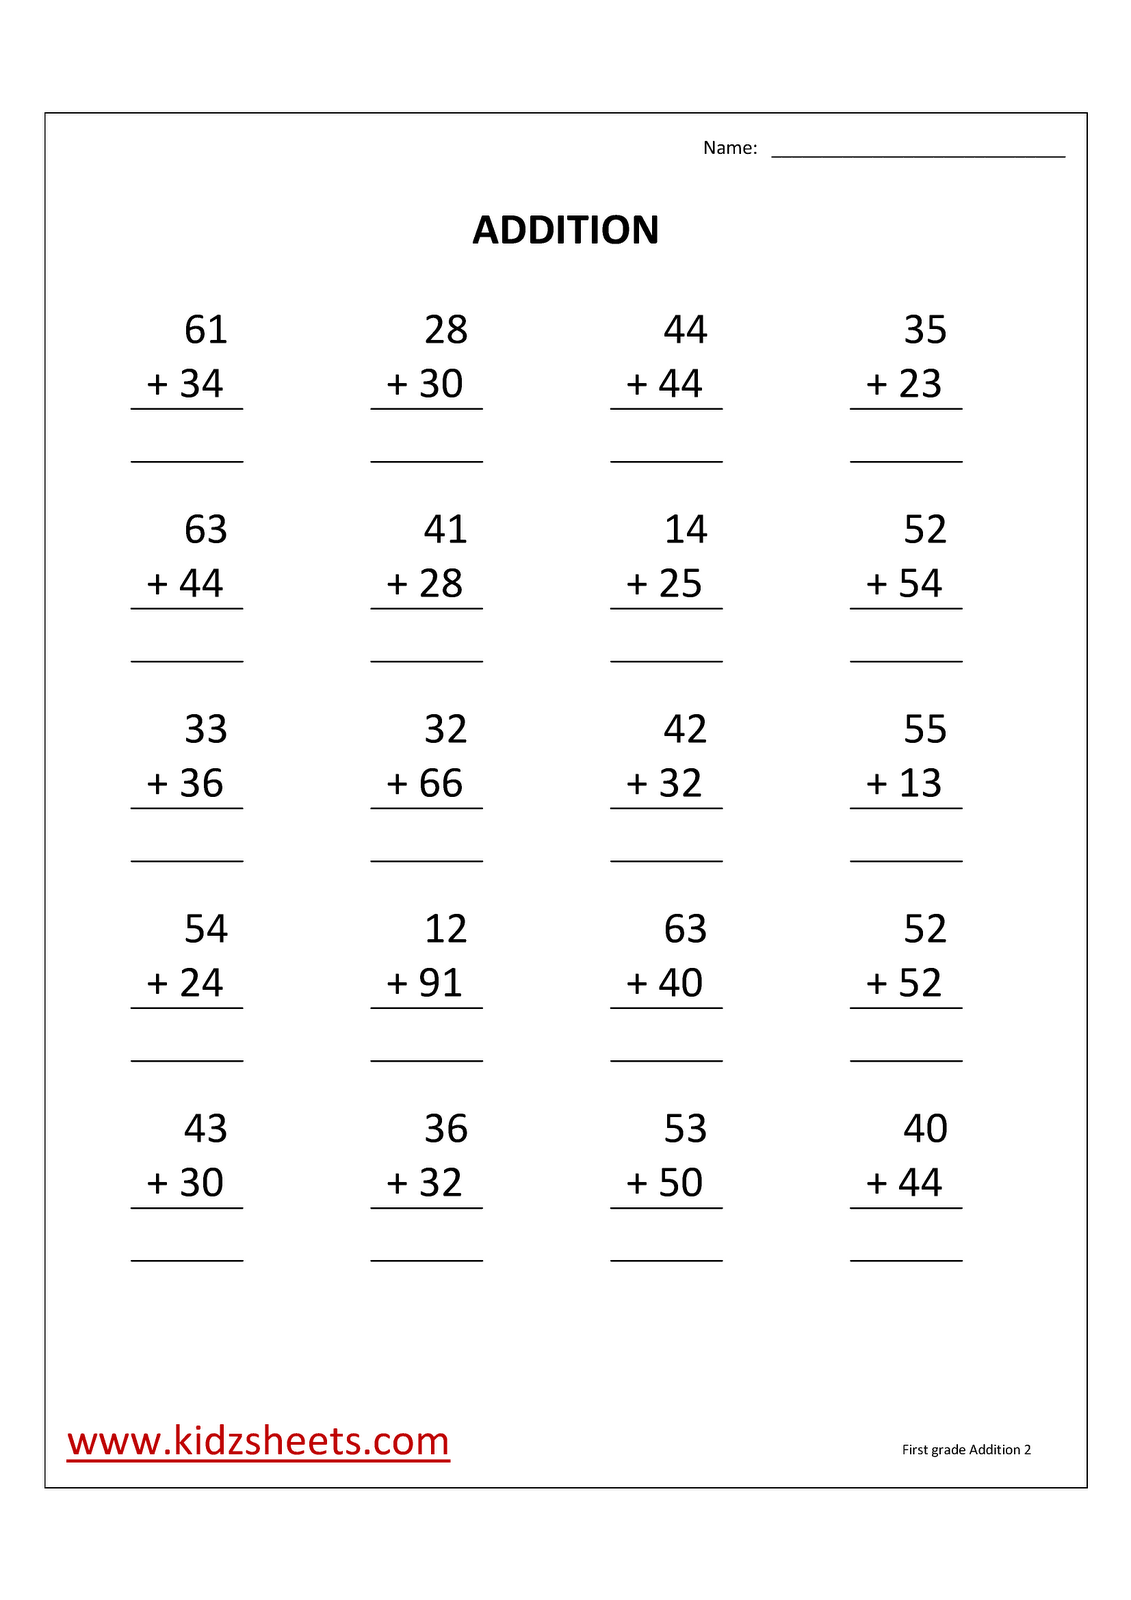 Worksheet 10001294 Fun Addition Worksheets for 1st Grade Math – Addition Worksheets for First Grade